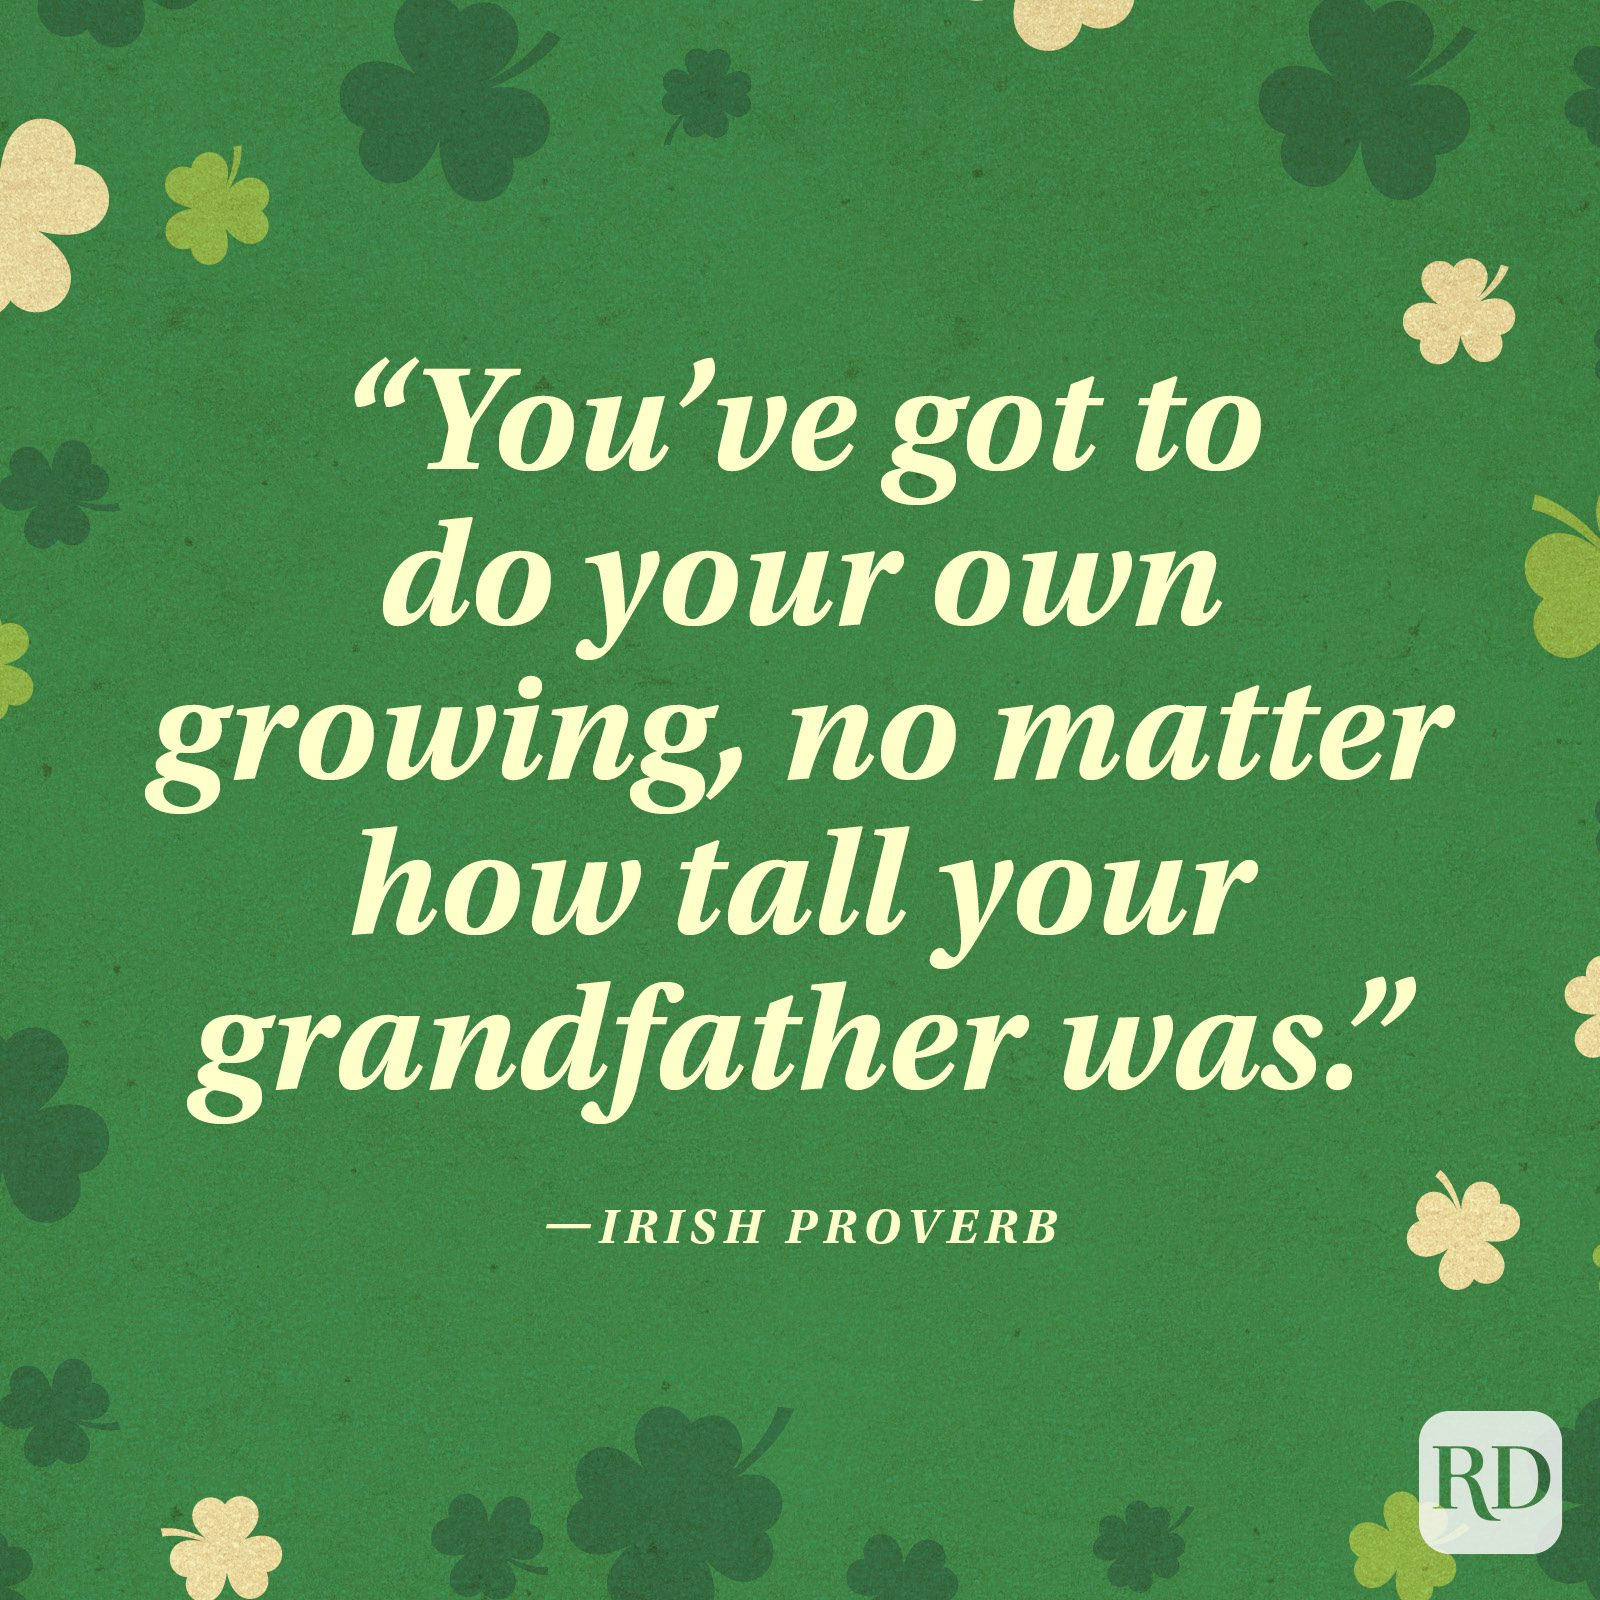 """You've got to do your own growing, no matter how tall your grandfather was."" —Irish proverb"